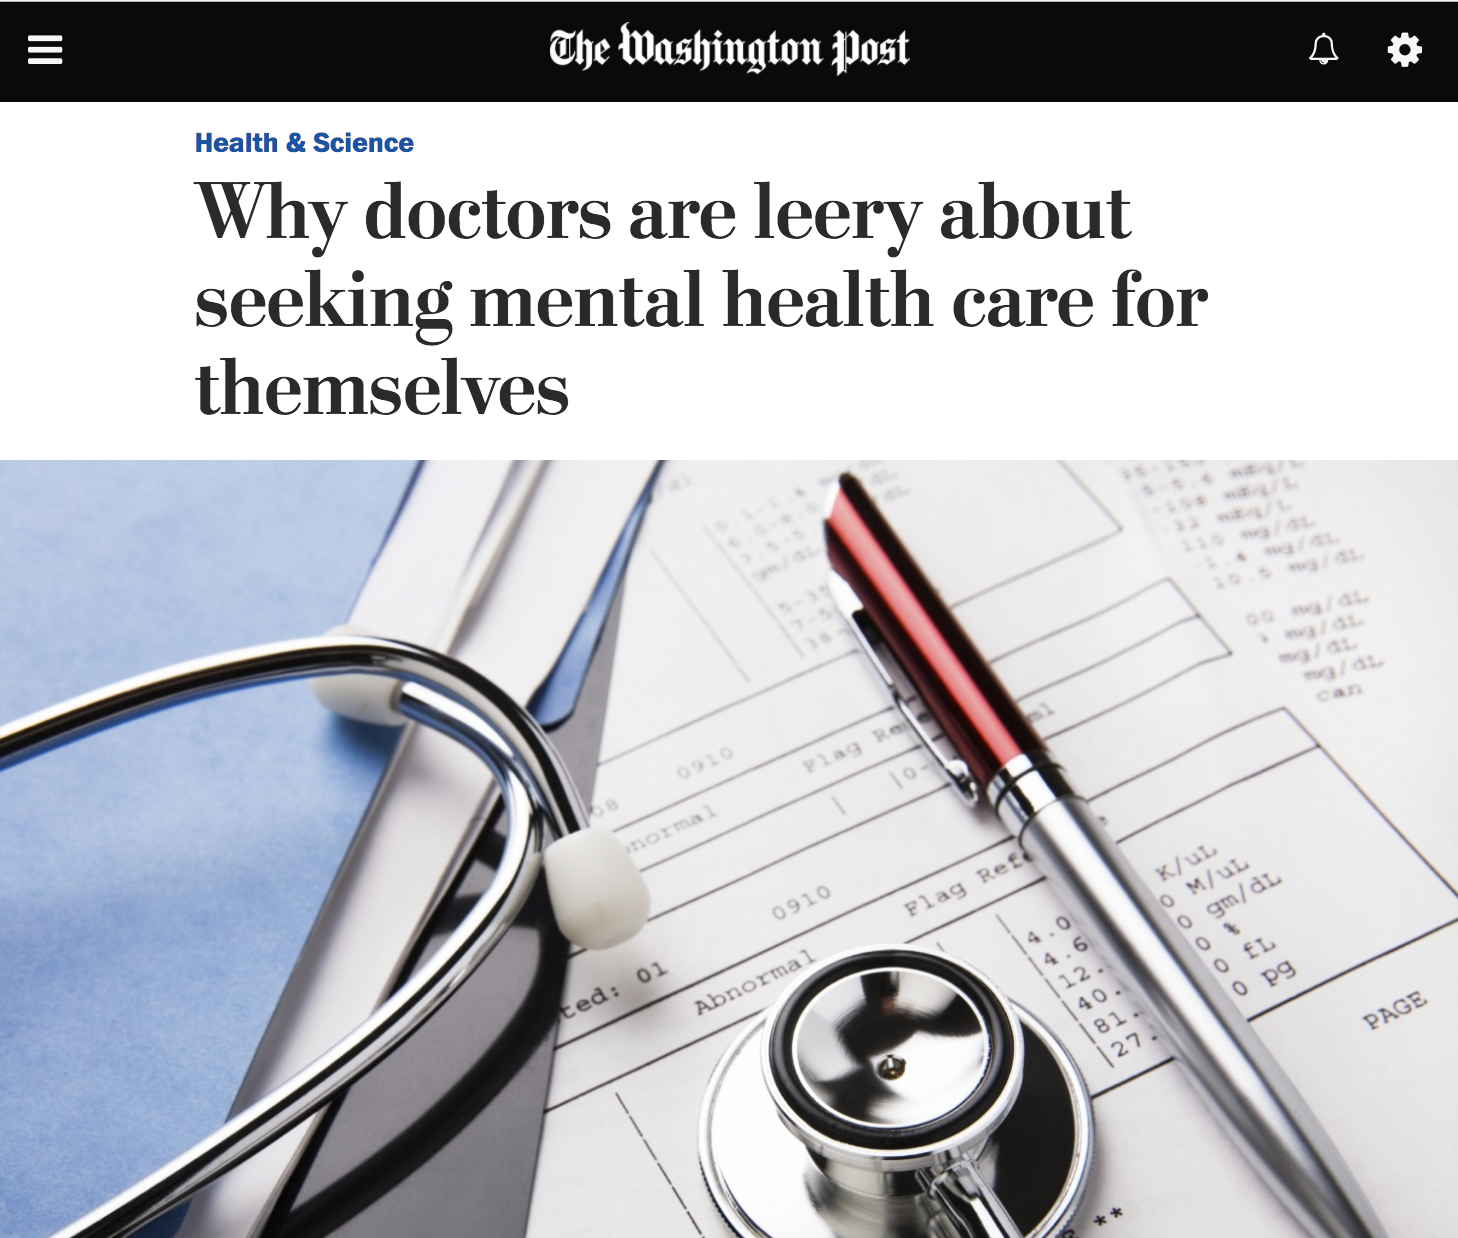 Screenshot of Washington Post online opinion article with title  Why doctors are leery about seeking mental health care for themselves